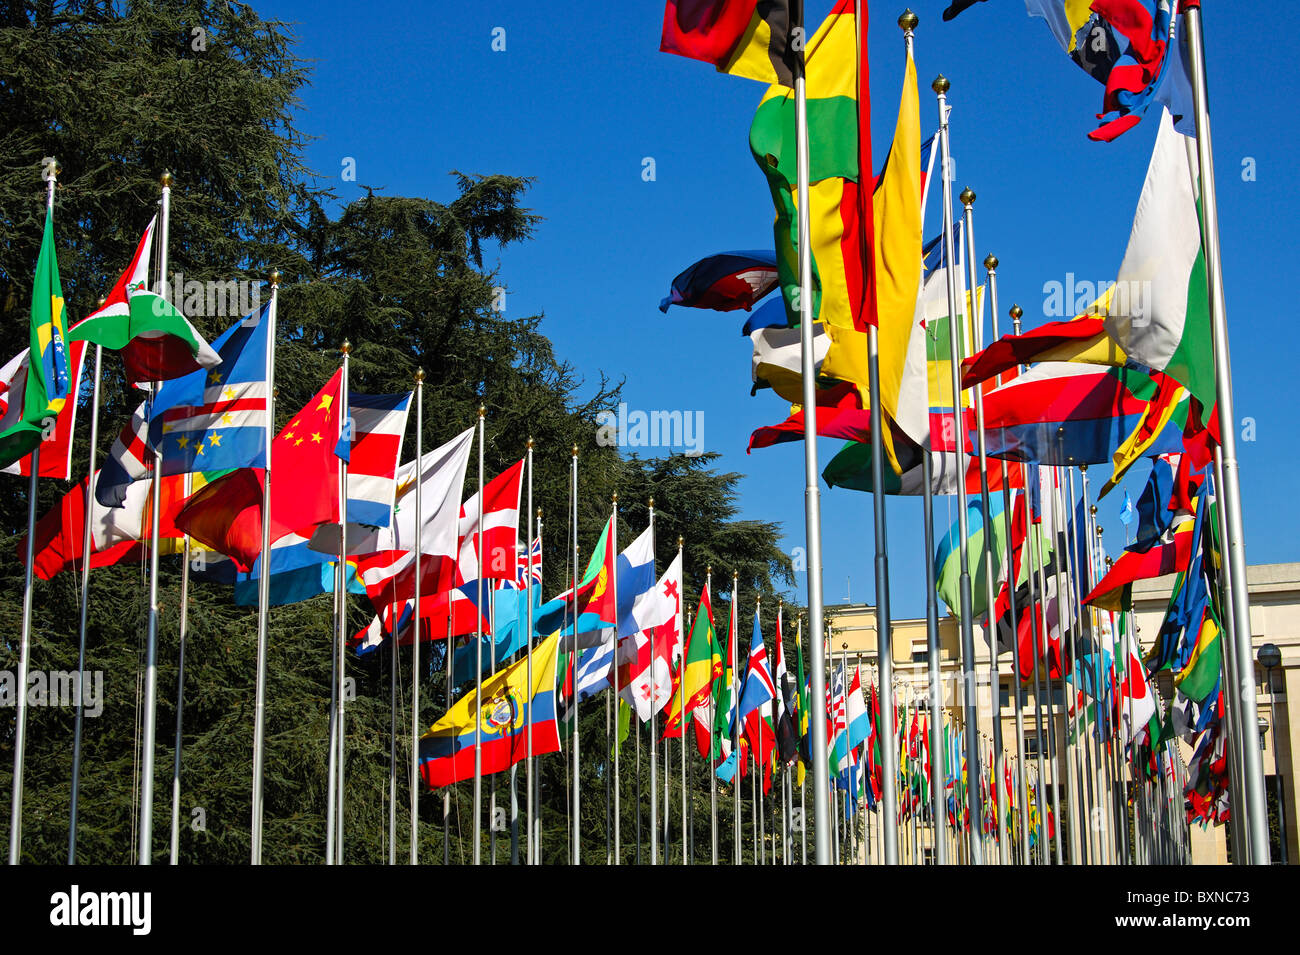 Flags from all countries around the world, Court of flag, United Nations, UNO, Palais des Nations, Geneva, Switzerland - Stock Image